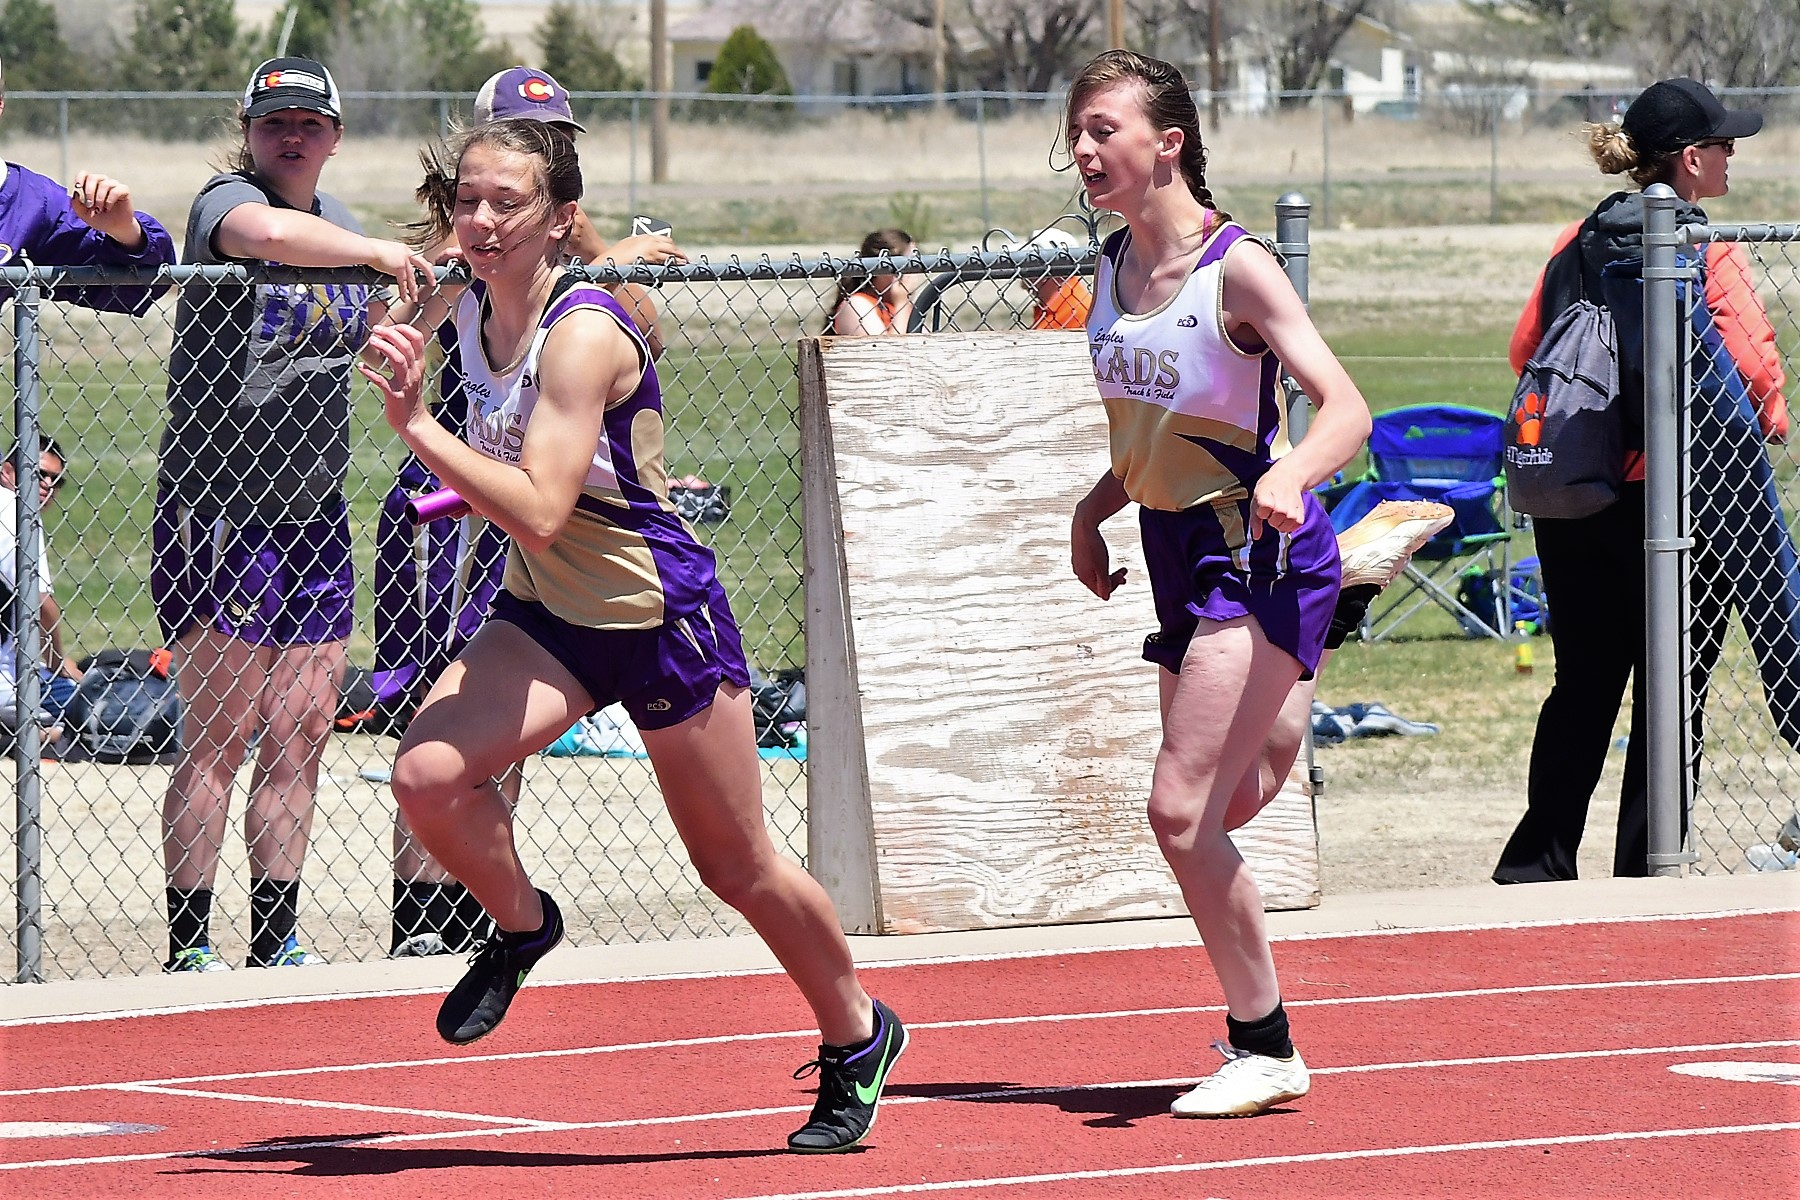 4x200 girls relay with Reagen Johnson handing off to Ally Spady.  Eads placed in 1:54.67 (Photo credit: Bob Schecter)